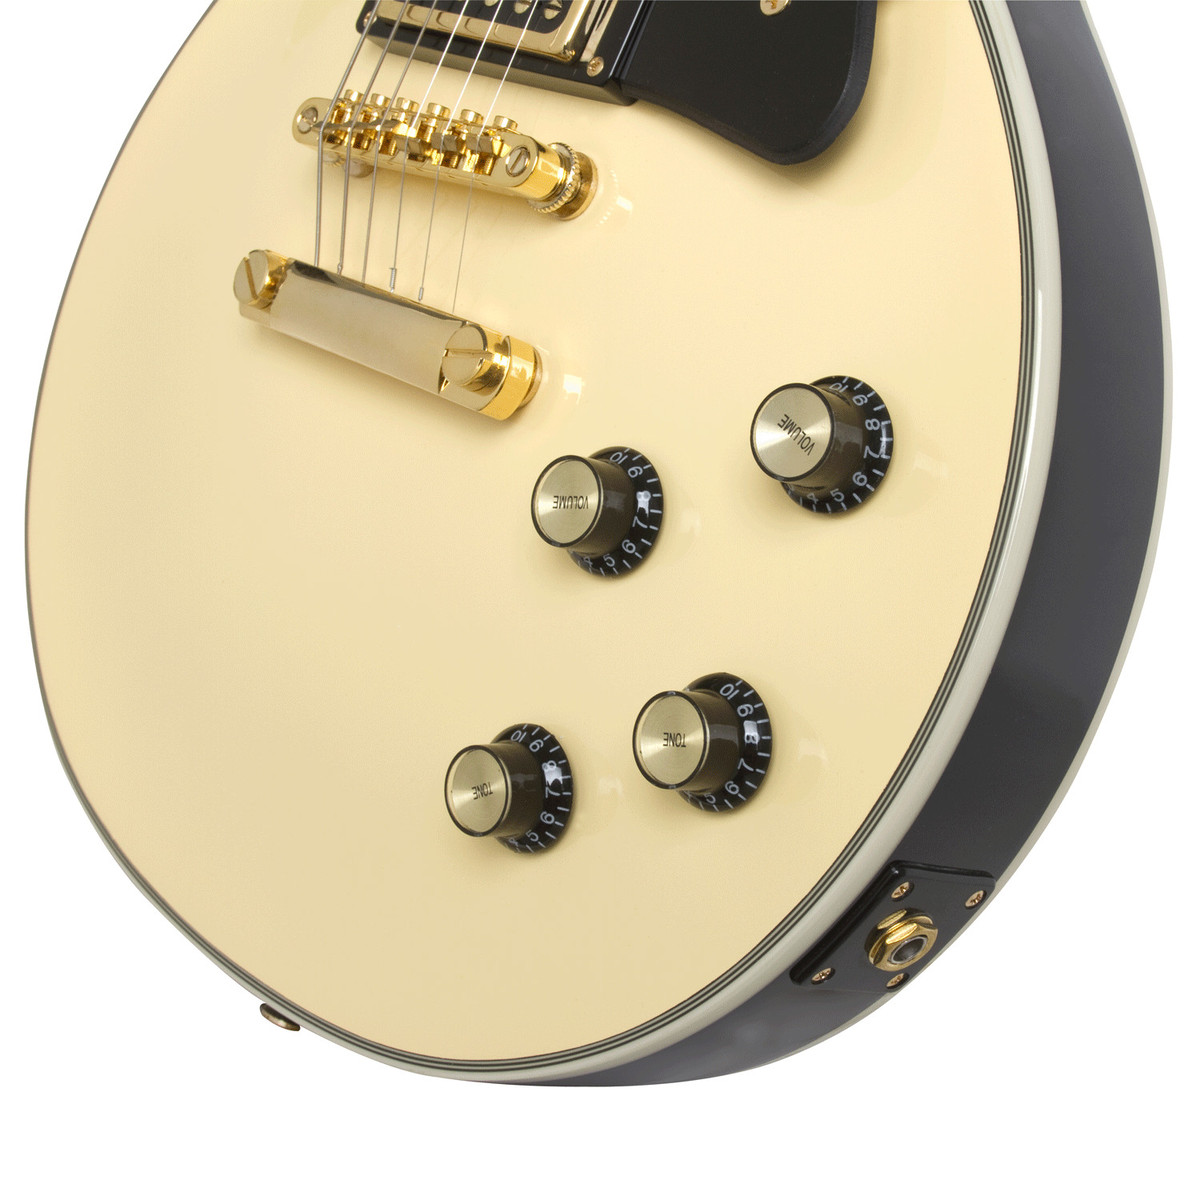 Epiphone Les Paul Custom Blackback Pro Electric Guitar Antique 1970 Gibson Wiring Diagram Ivory